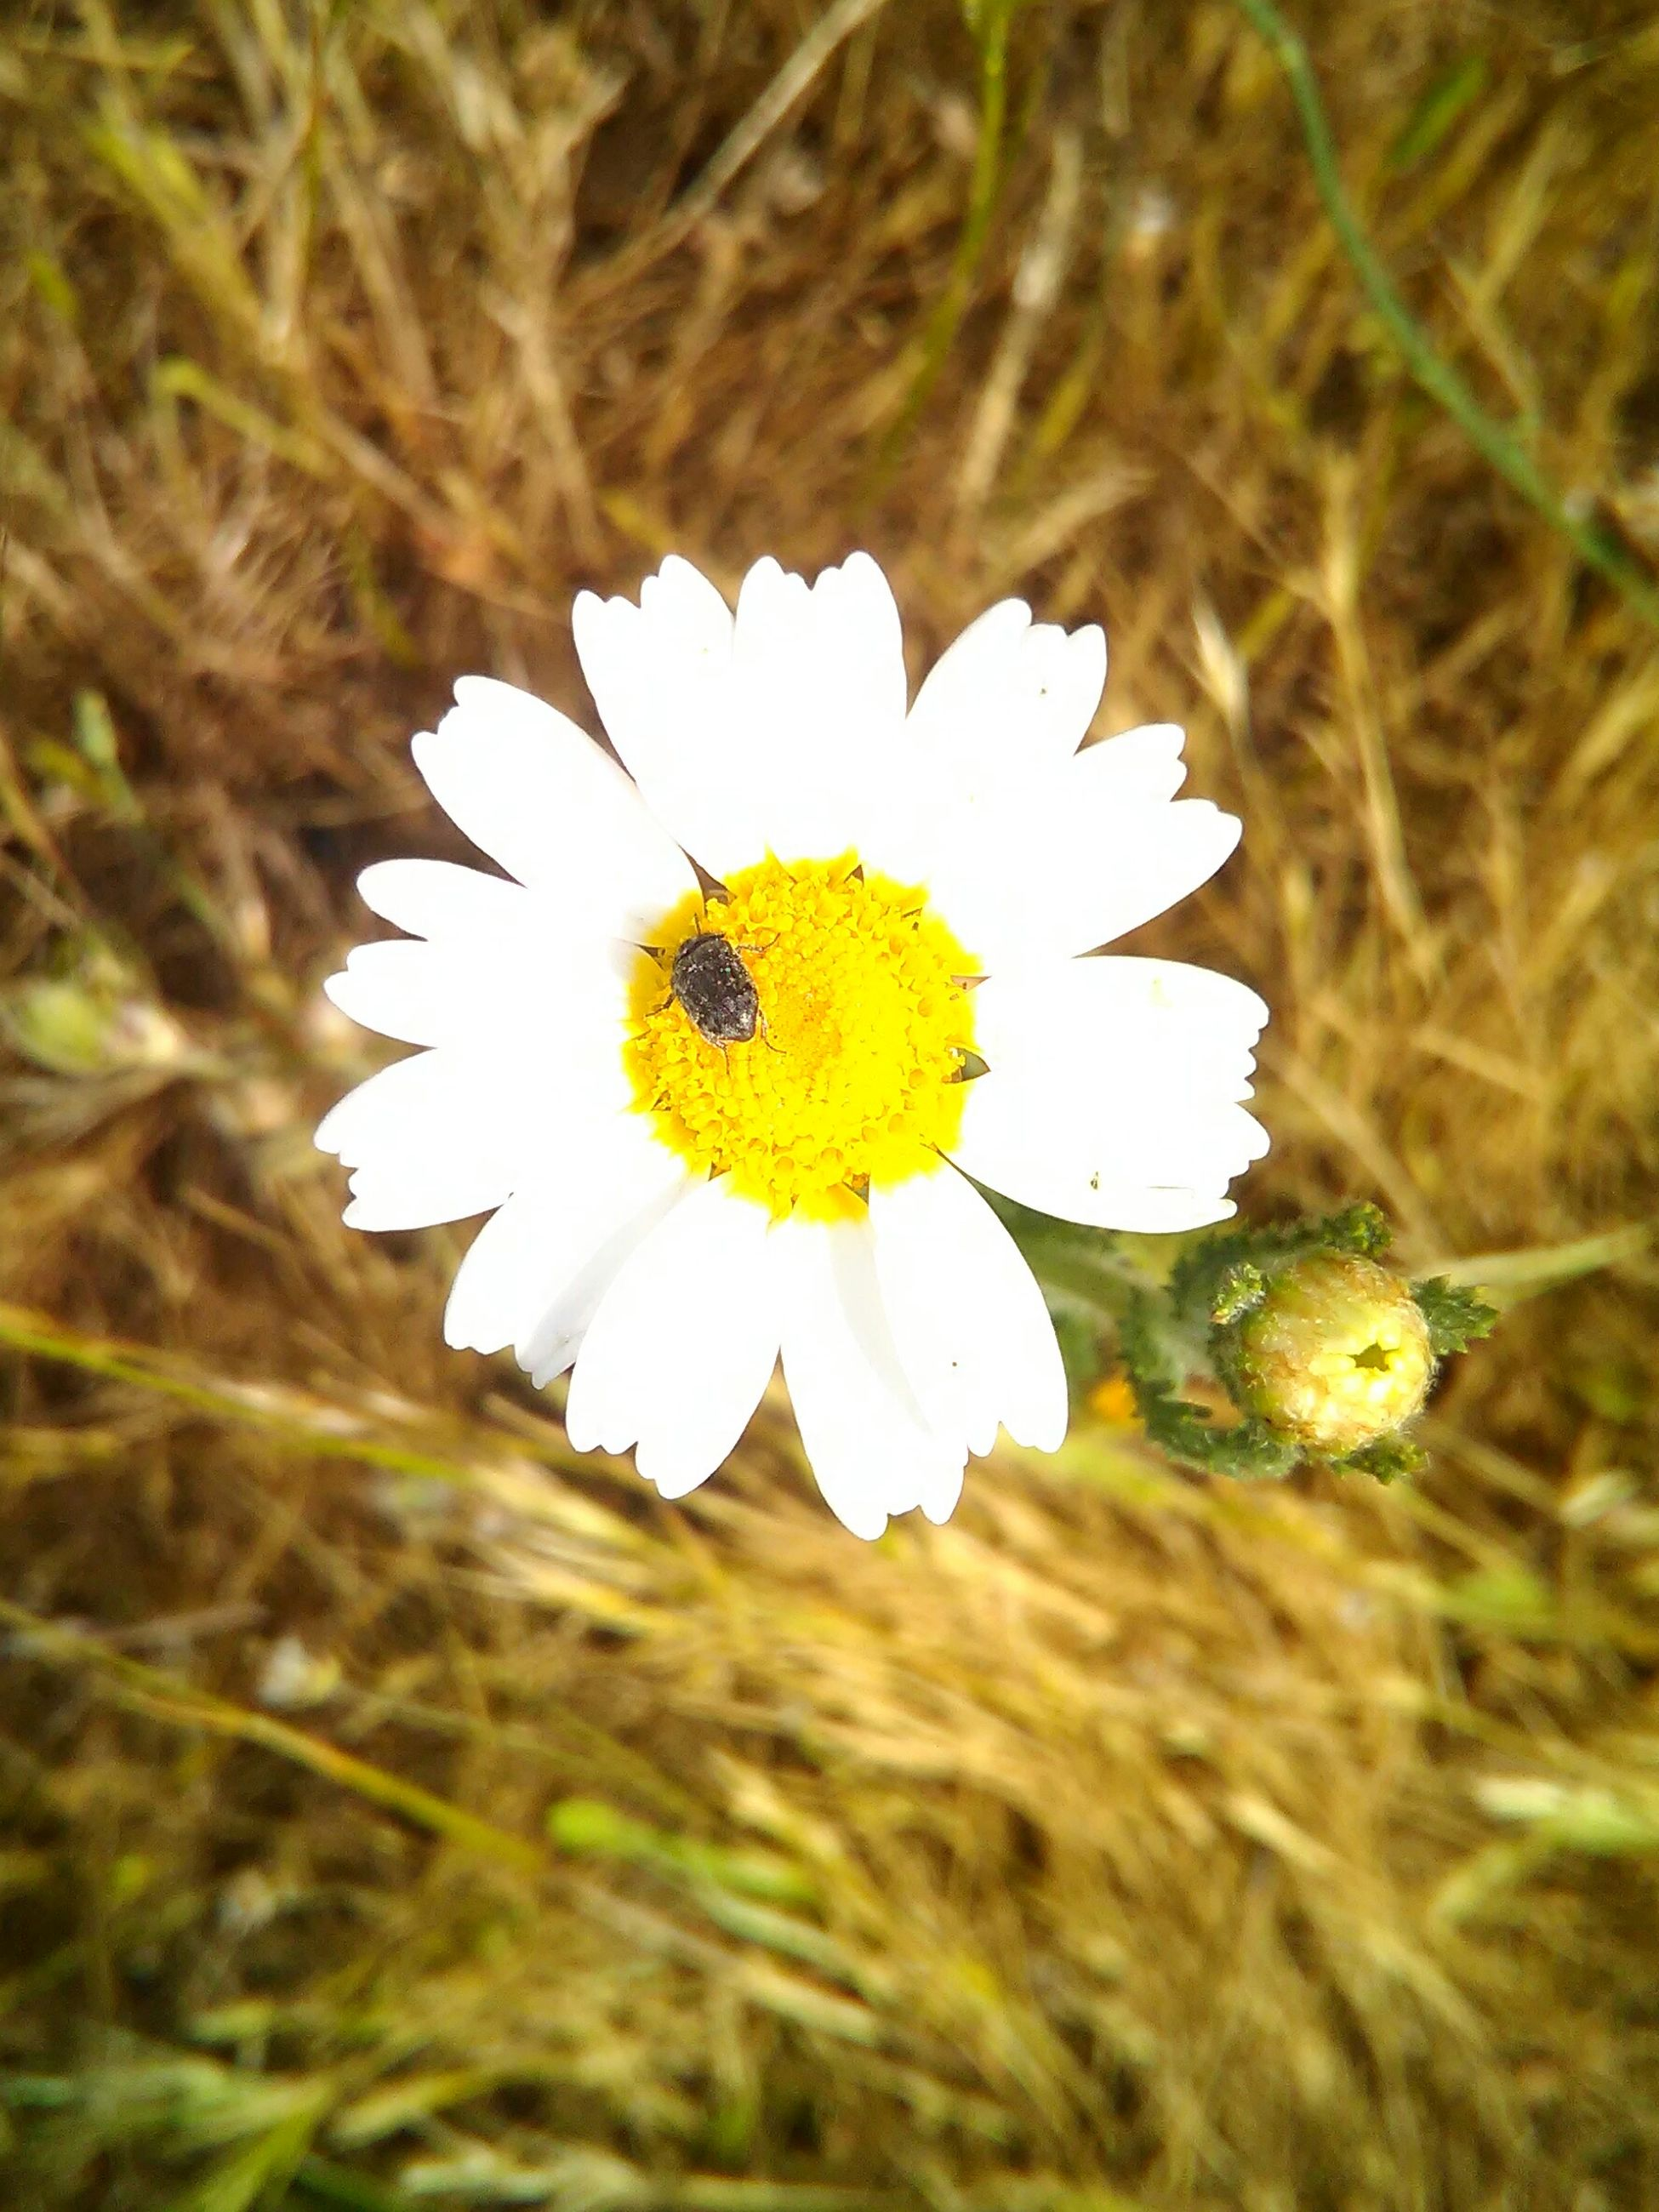 flower, petal, flower head, fragility, freshness, single flower, white color, pollen, yellow, growth, blooming, beauty in nature, daisy, close-up, plant, nature, focus on foreground, field, in bloom, high angle view